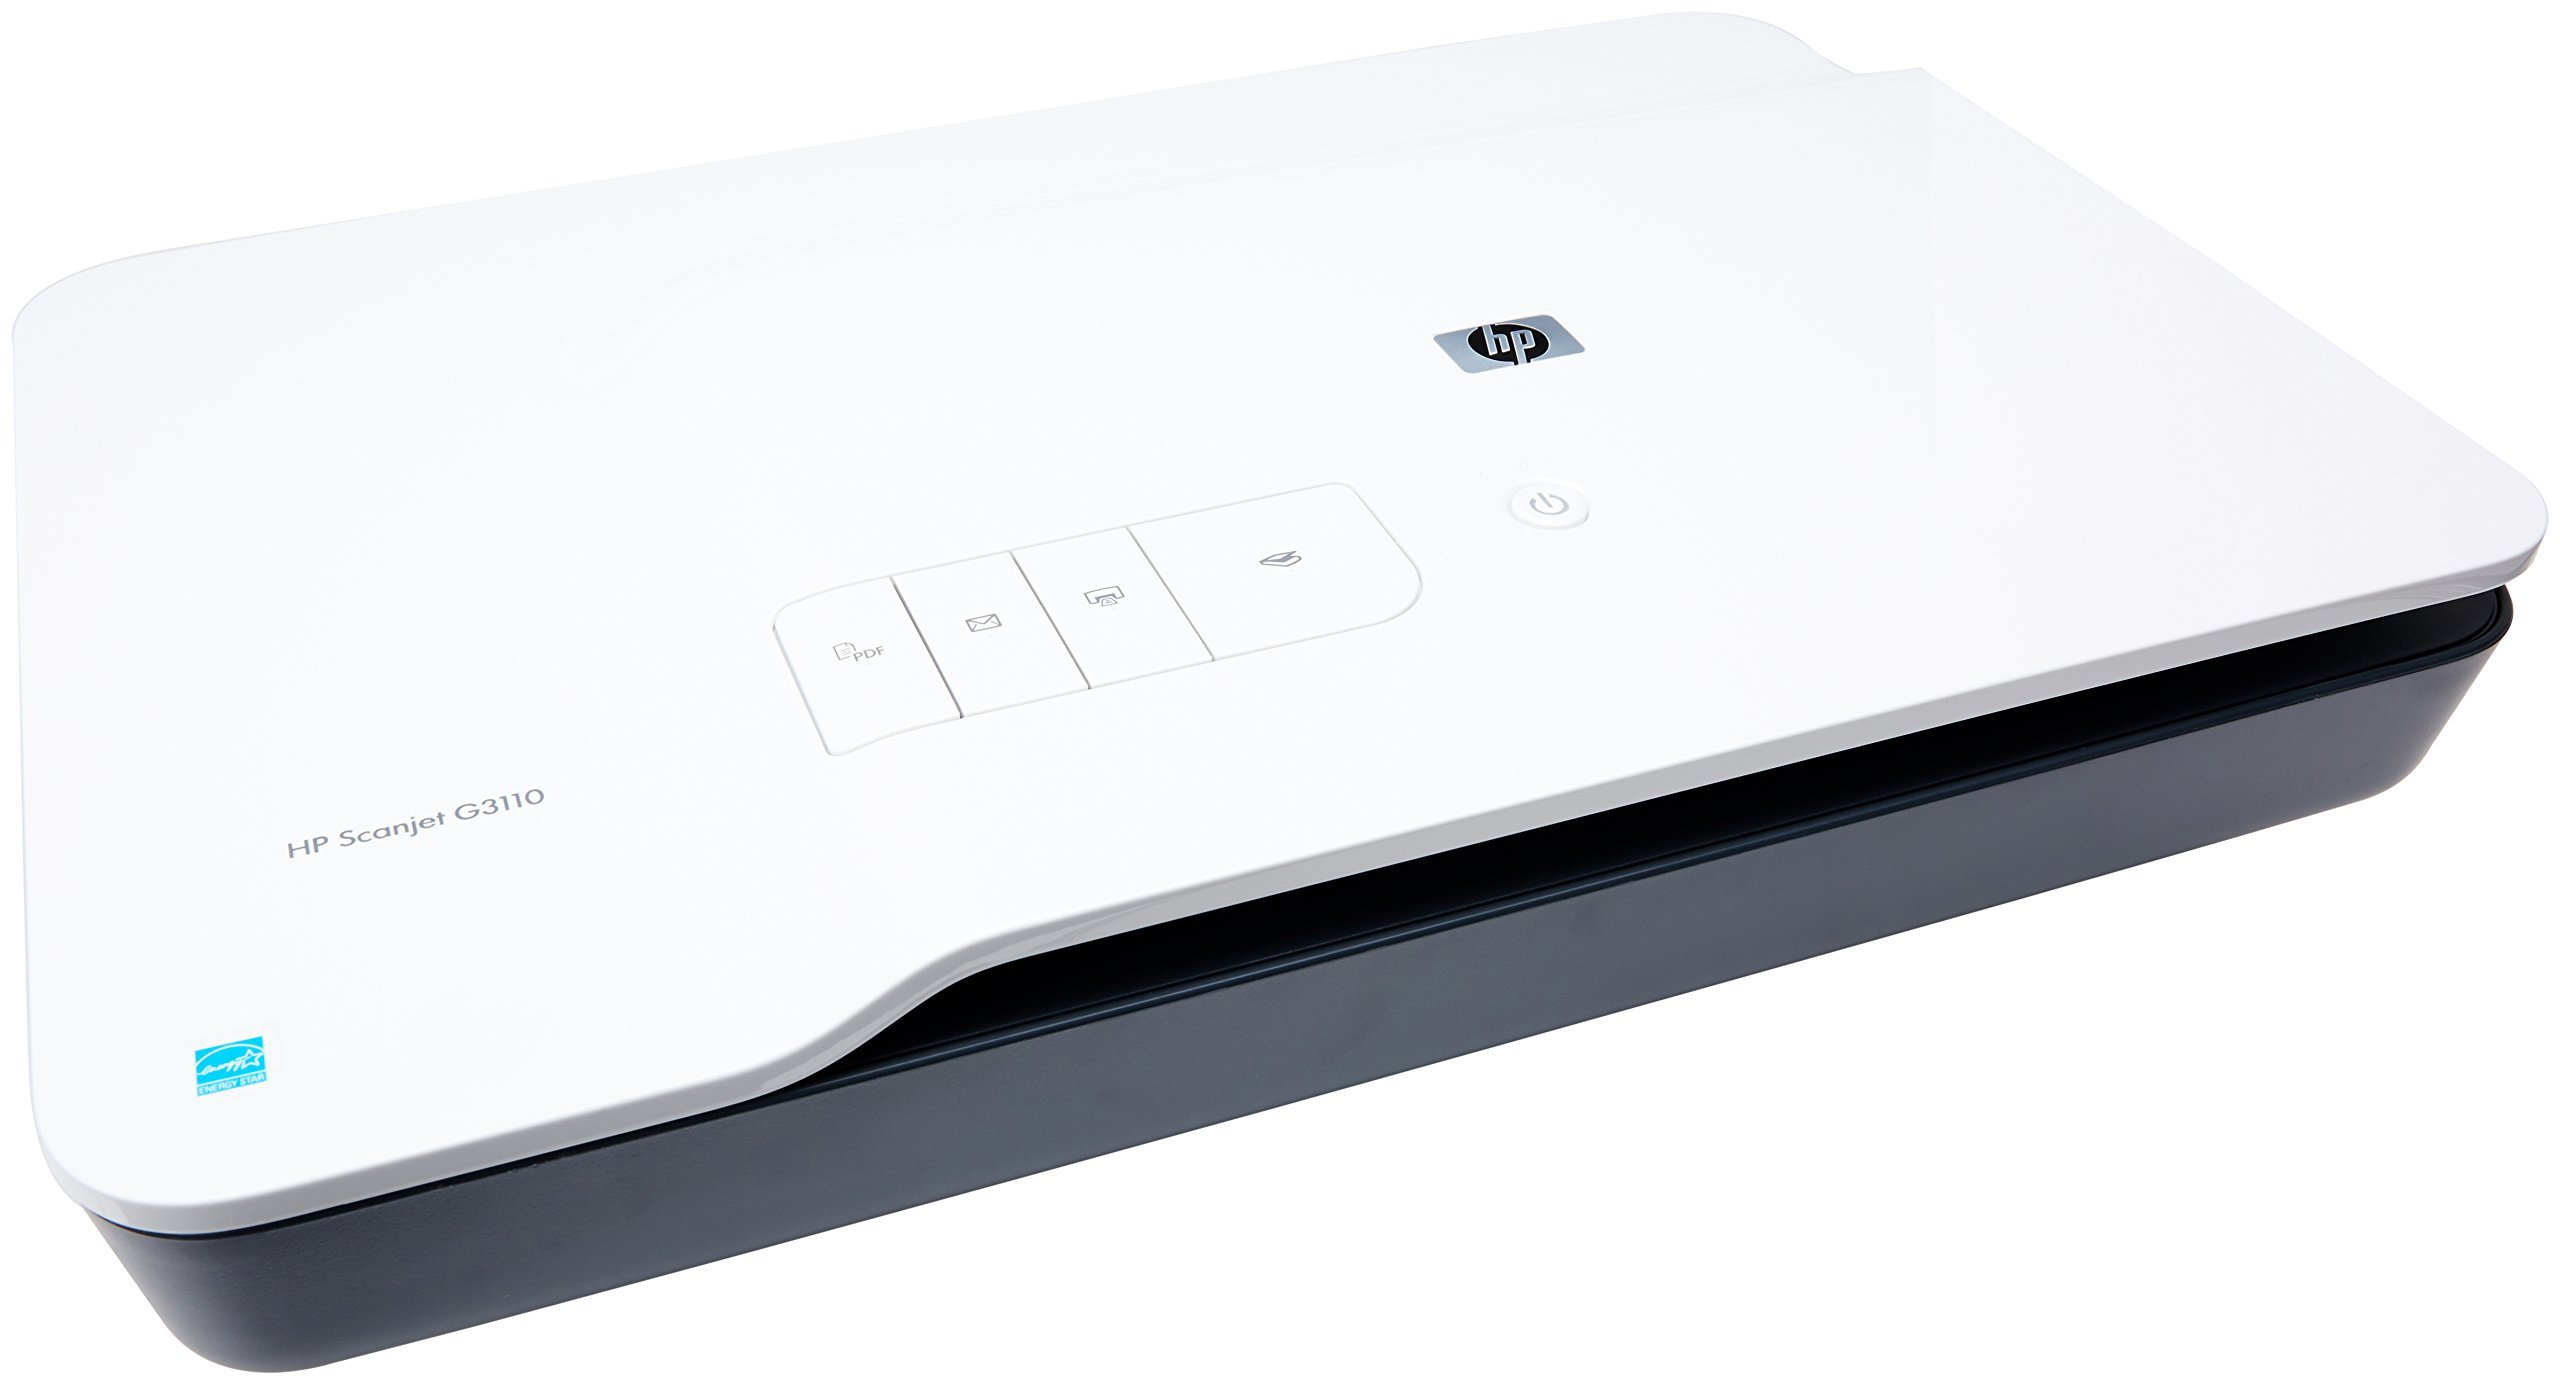 HP ScanJet G3110 Photo Scanner - Scanner à plat - 220 x 300 mm - 4800 ppp x 9600 ppp - Hi-Speed USB (Renewed)